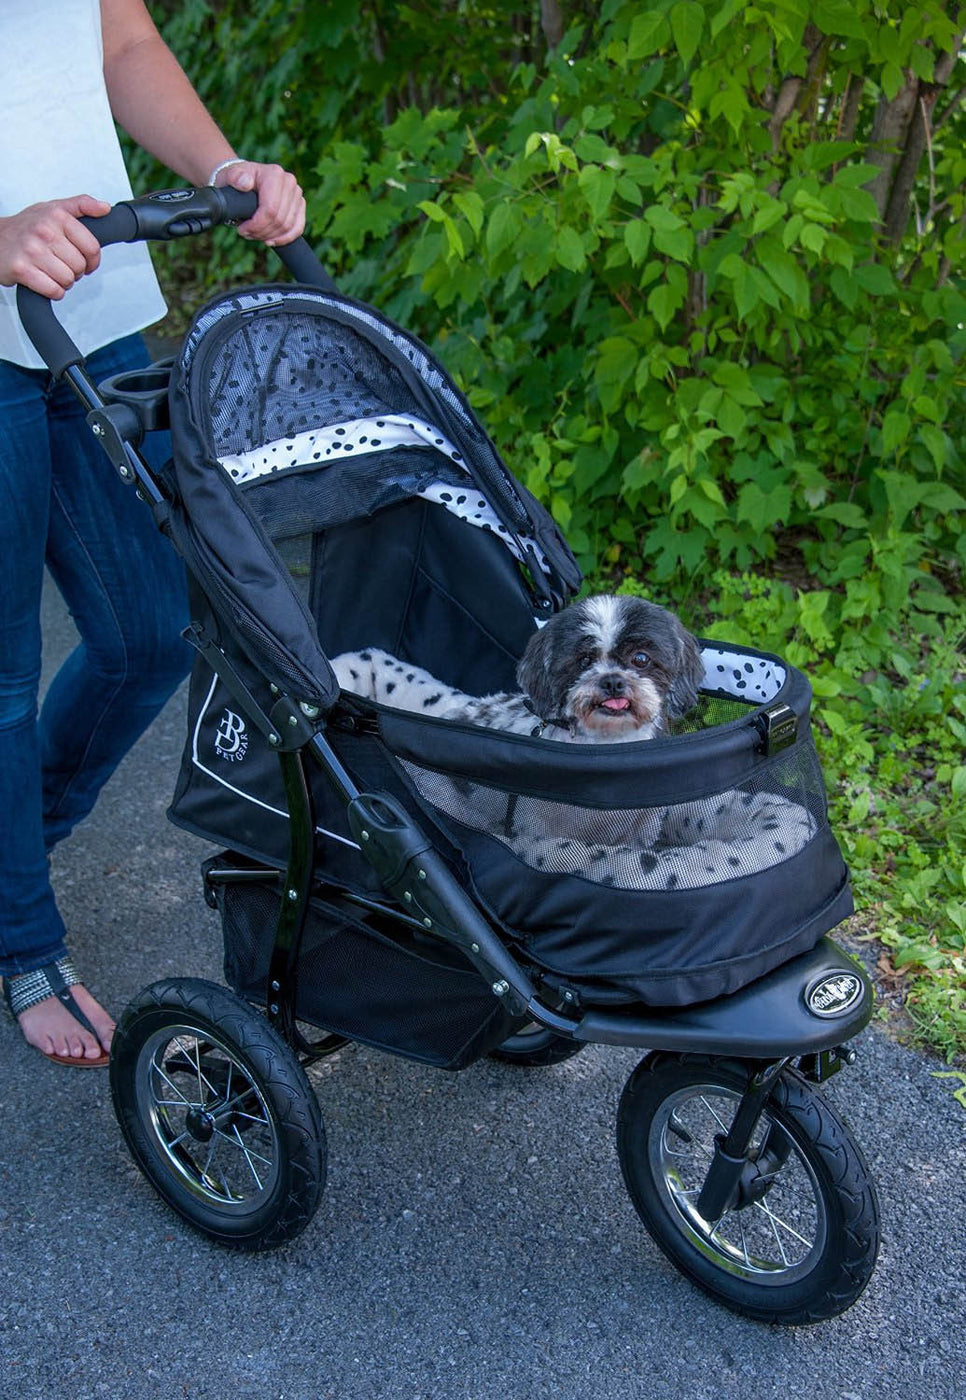 pet gear dalmatian dog stroller